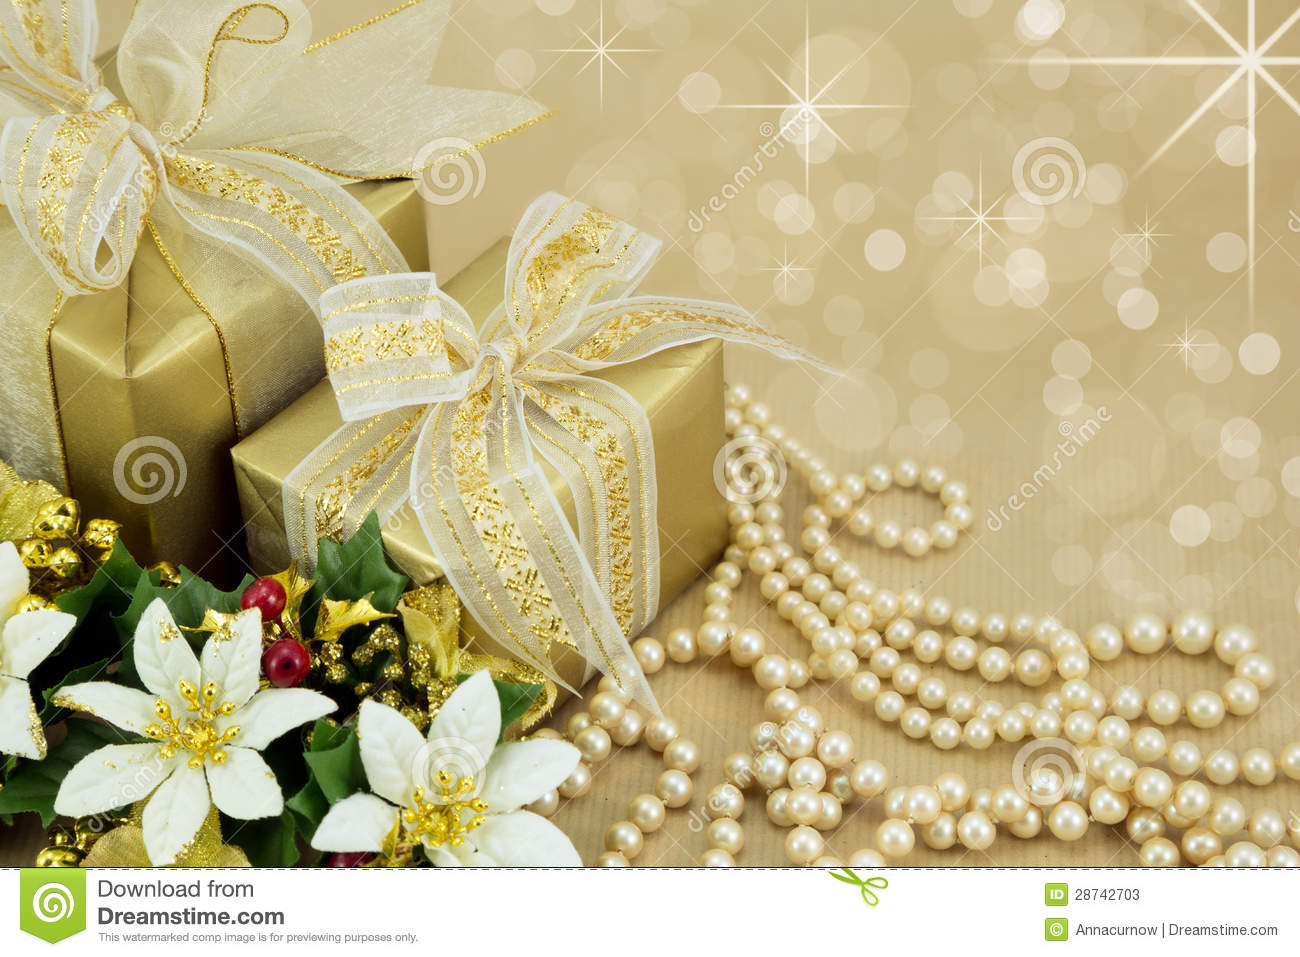 Gold Wrapped Presents With Pearls And Flowers Stock Image